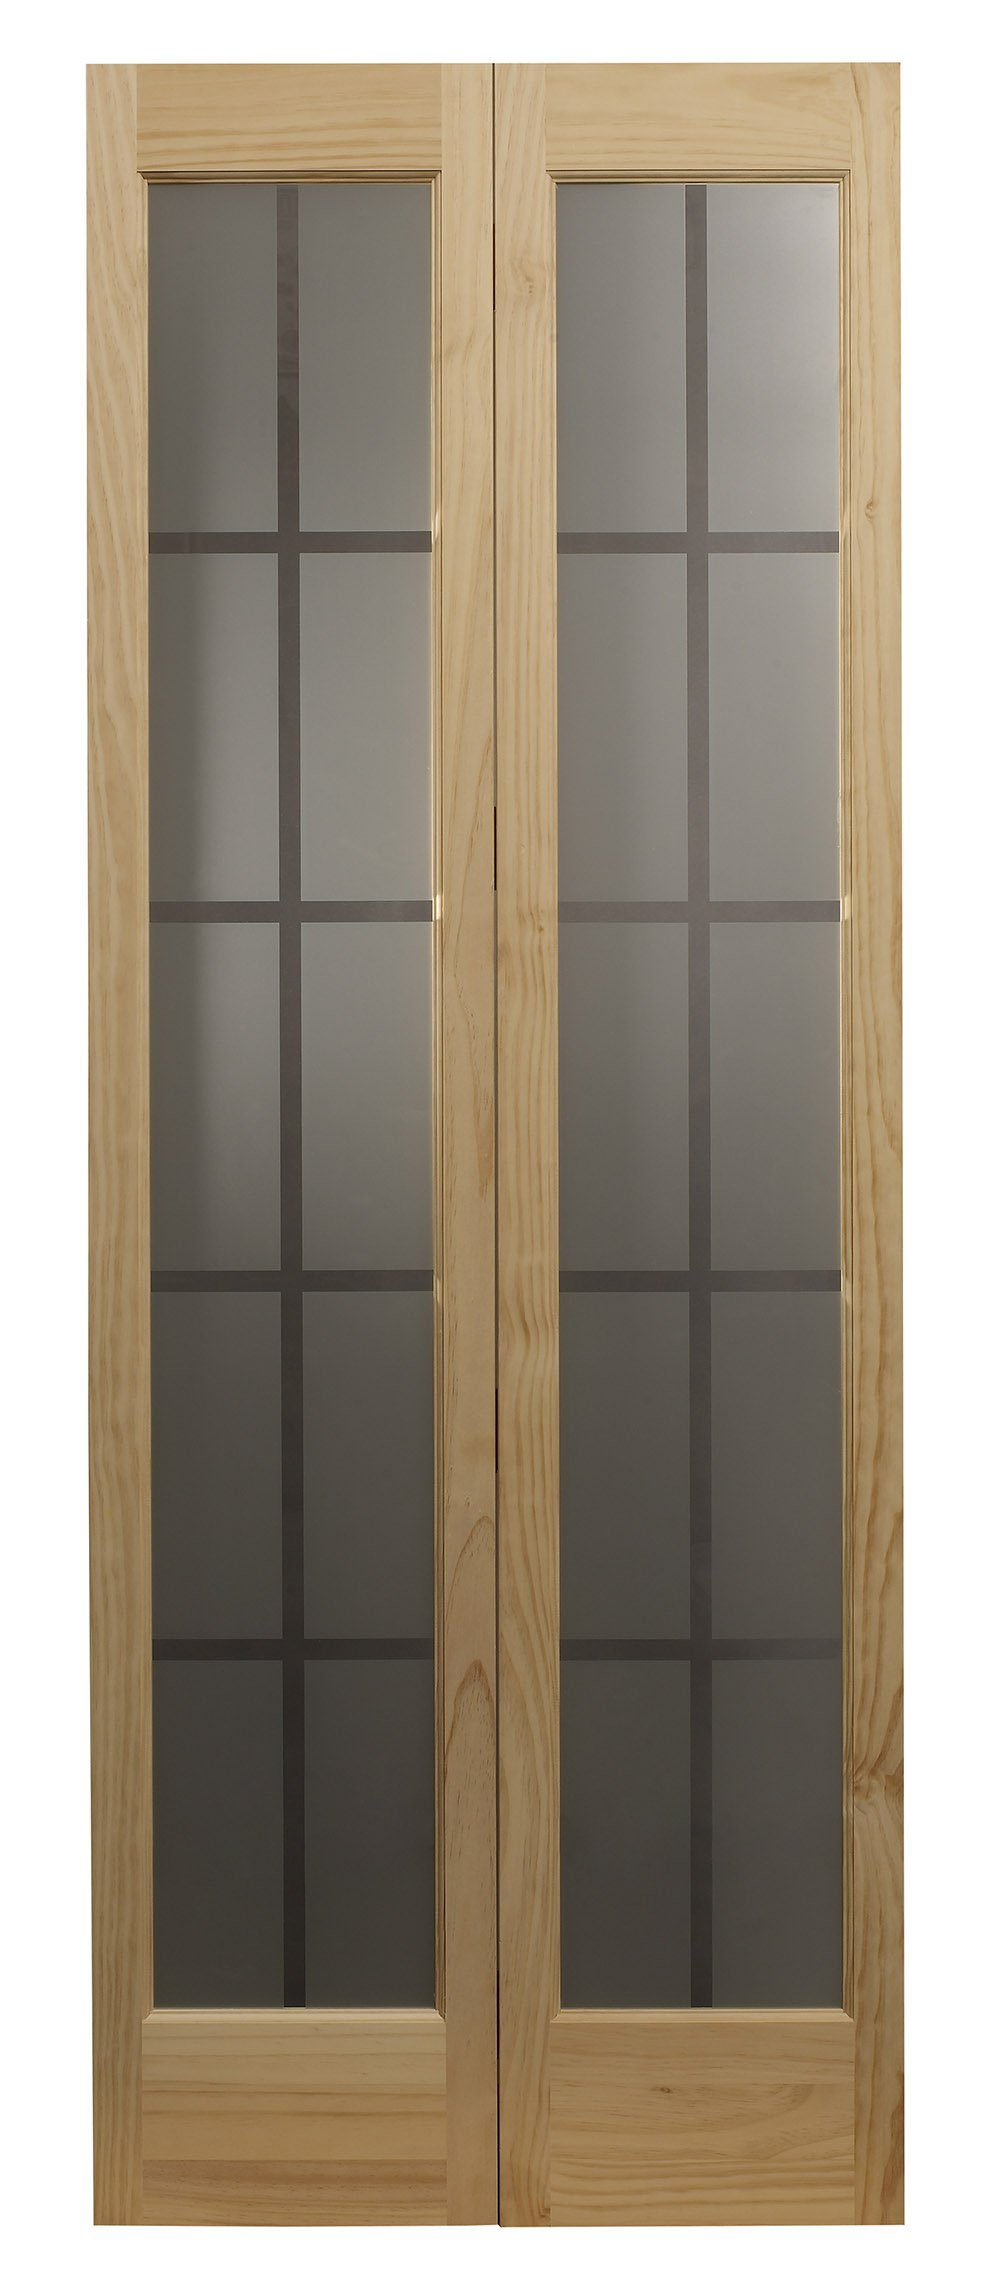 Pinecroft 837326 Mission Full Glass Bifold Interior Wood Door, 30'' x 80'', Unfinished by LTL Home Products